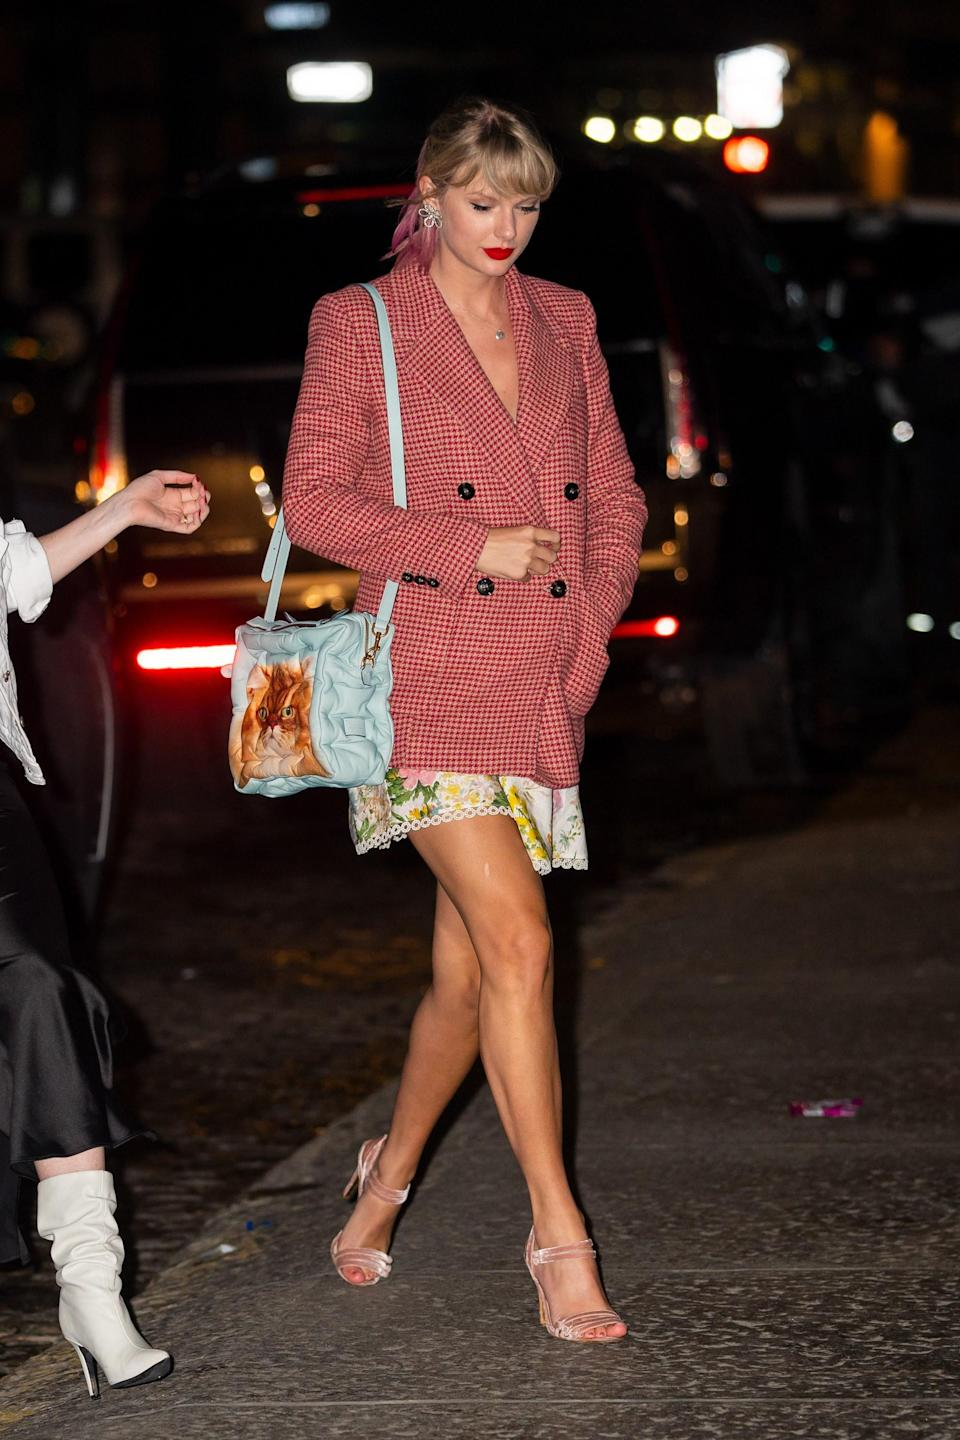 Later that evening she changed into a Mango blazer and Zimmermann dress.